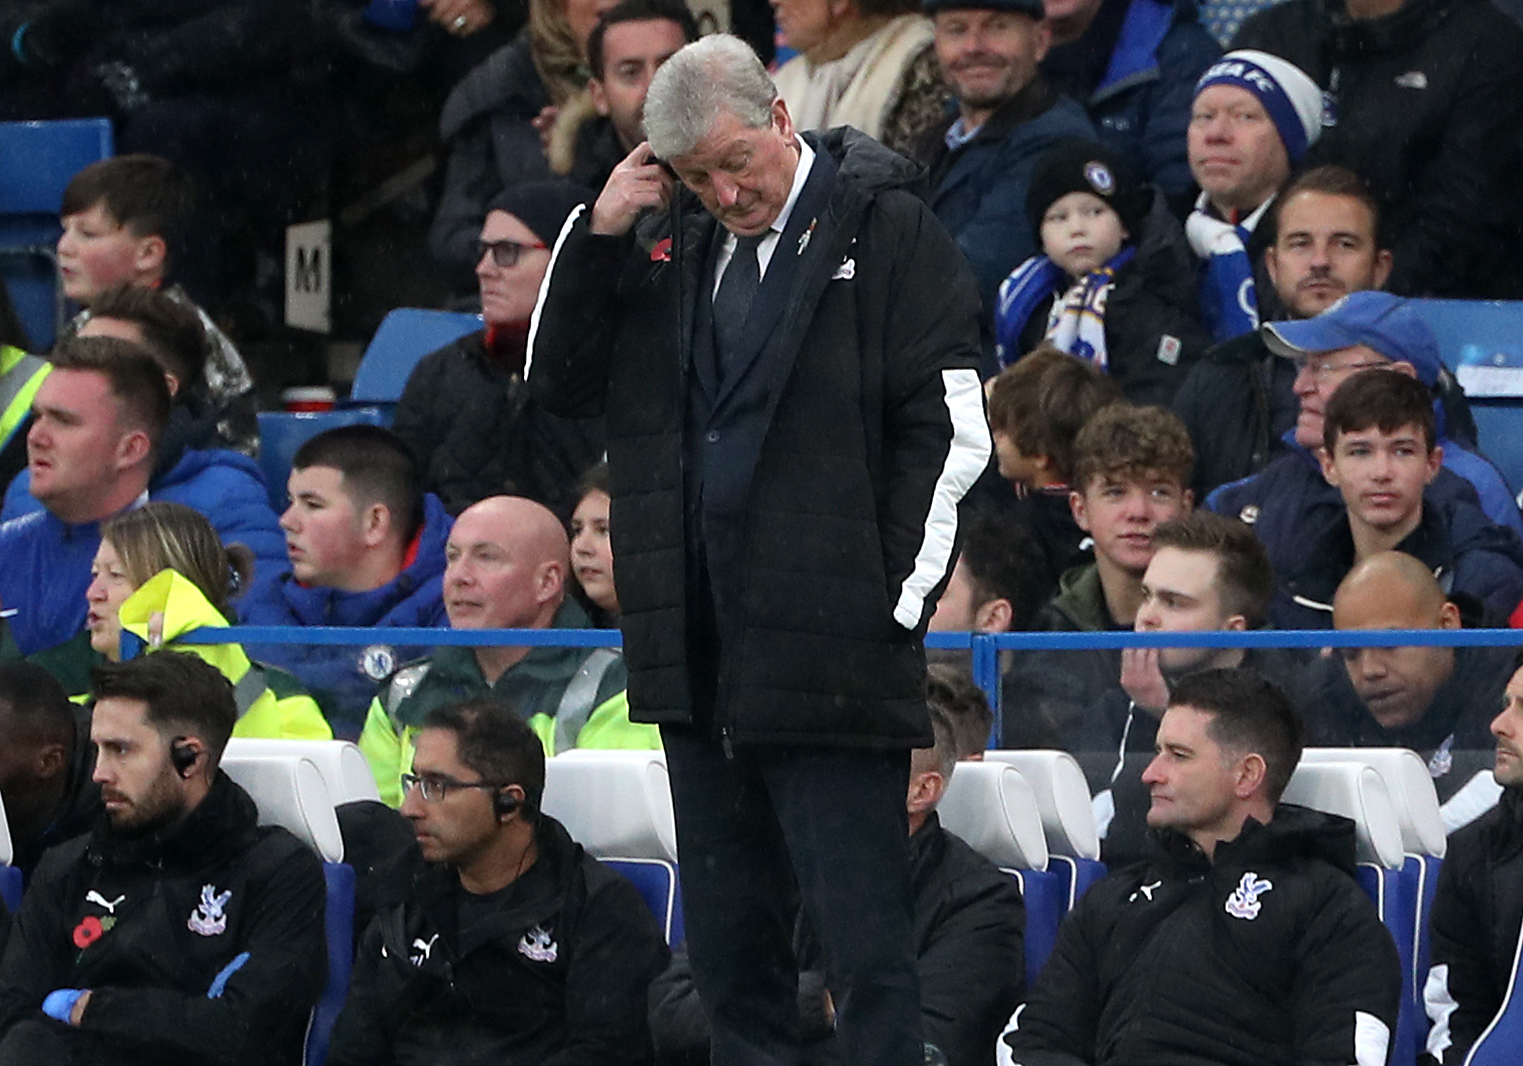 Hodgson won't knock his Crystal Palace side after 2-0 Chelsea defeat